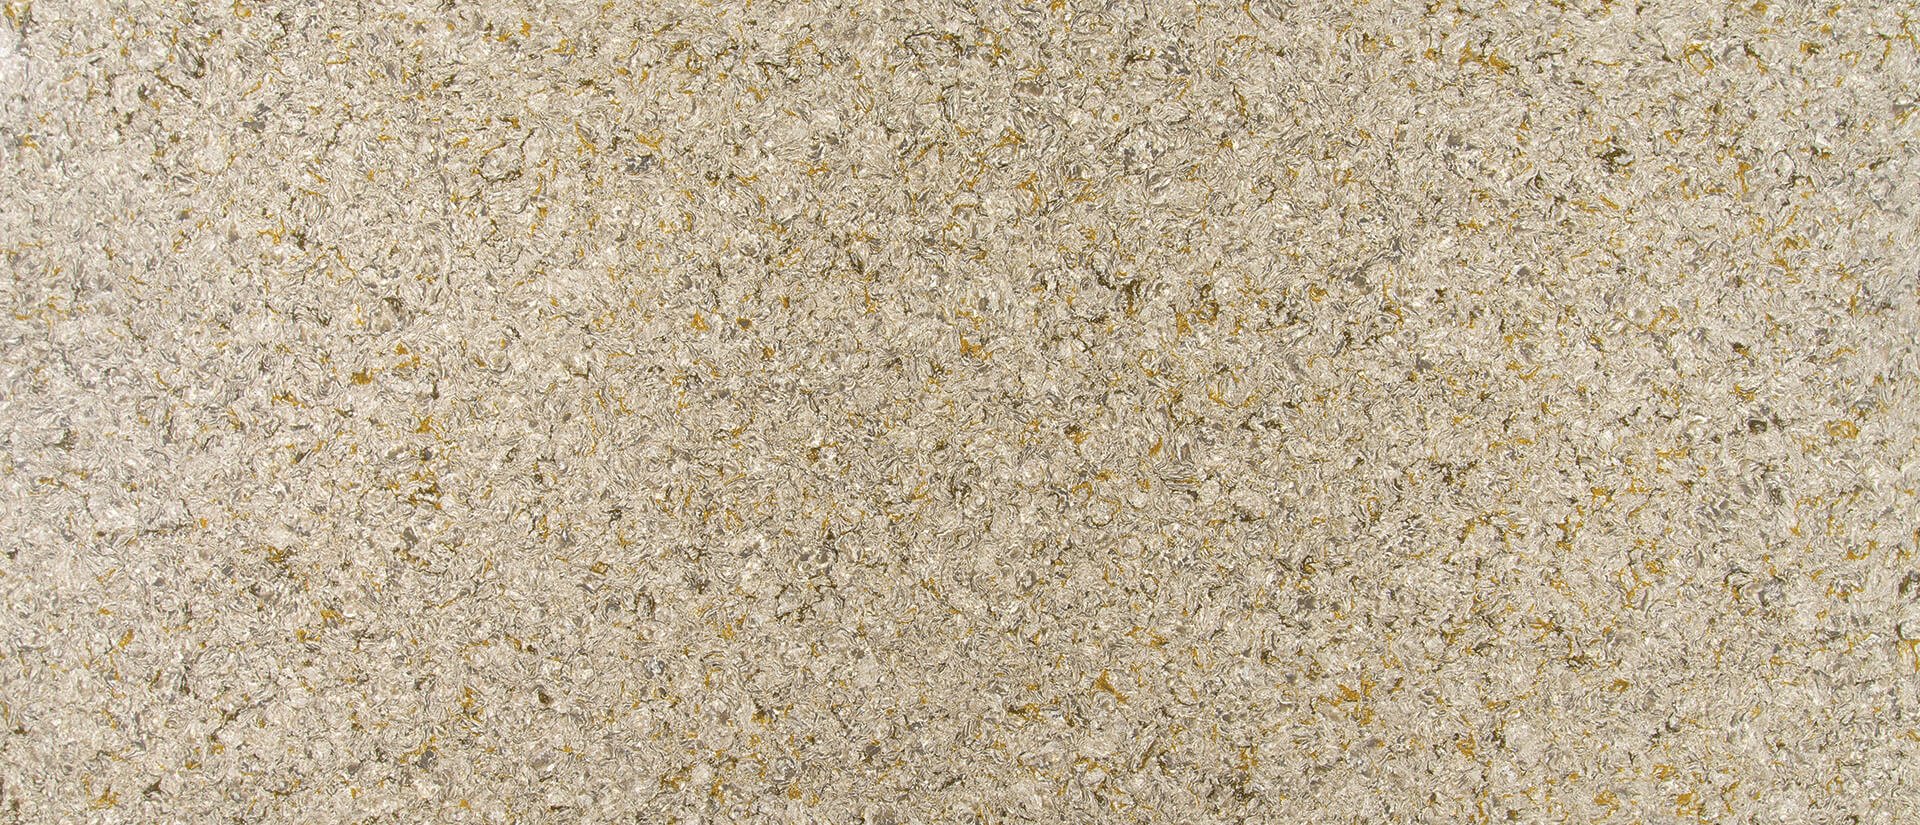 Taupe Quartz Countertop Chantilly Taupe Quartz Absolute Kitchen And Granite